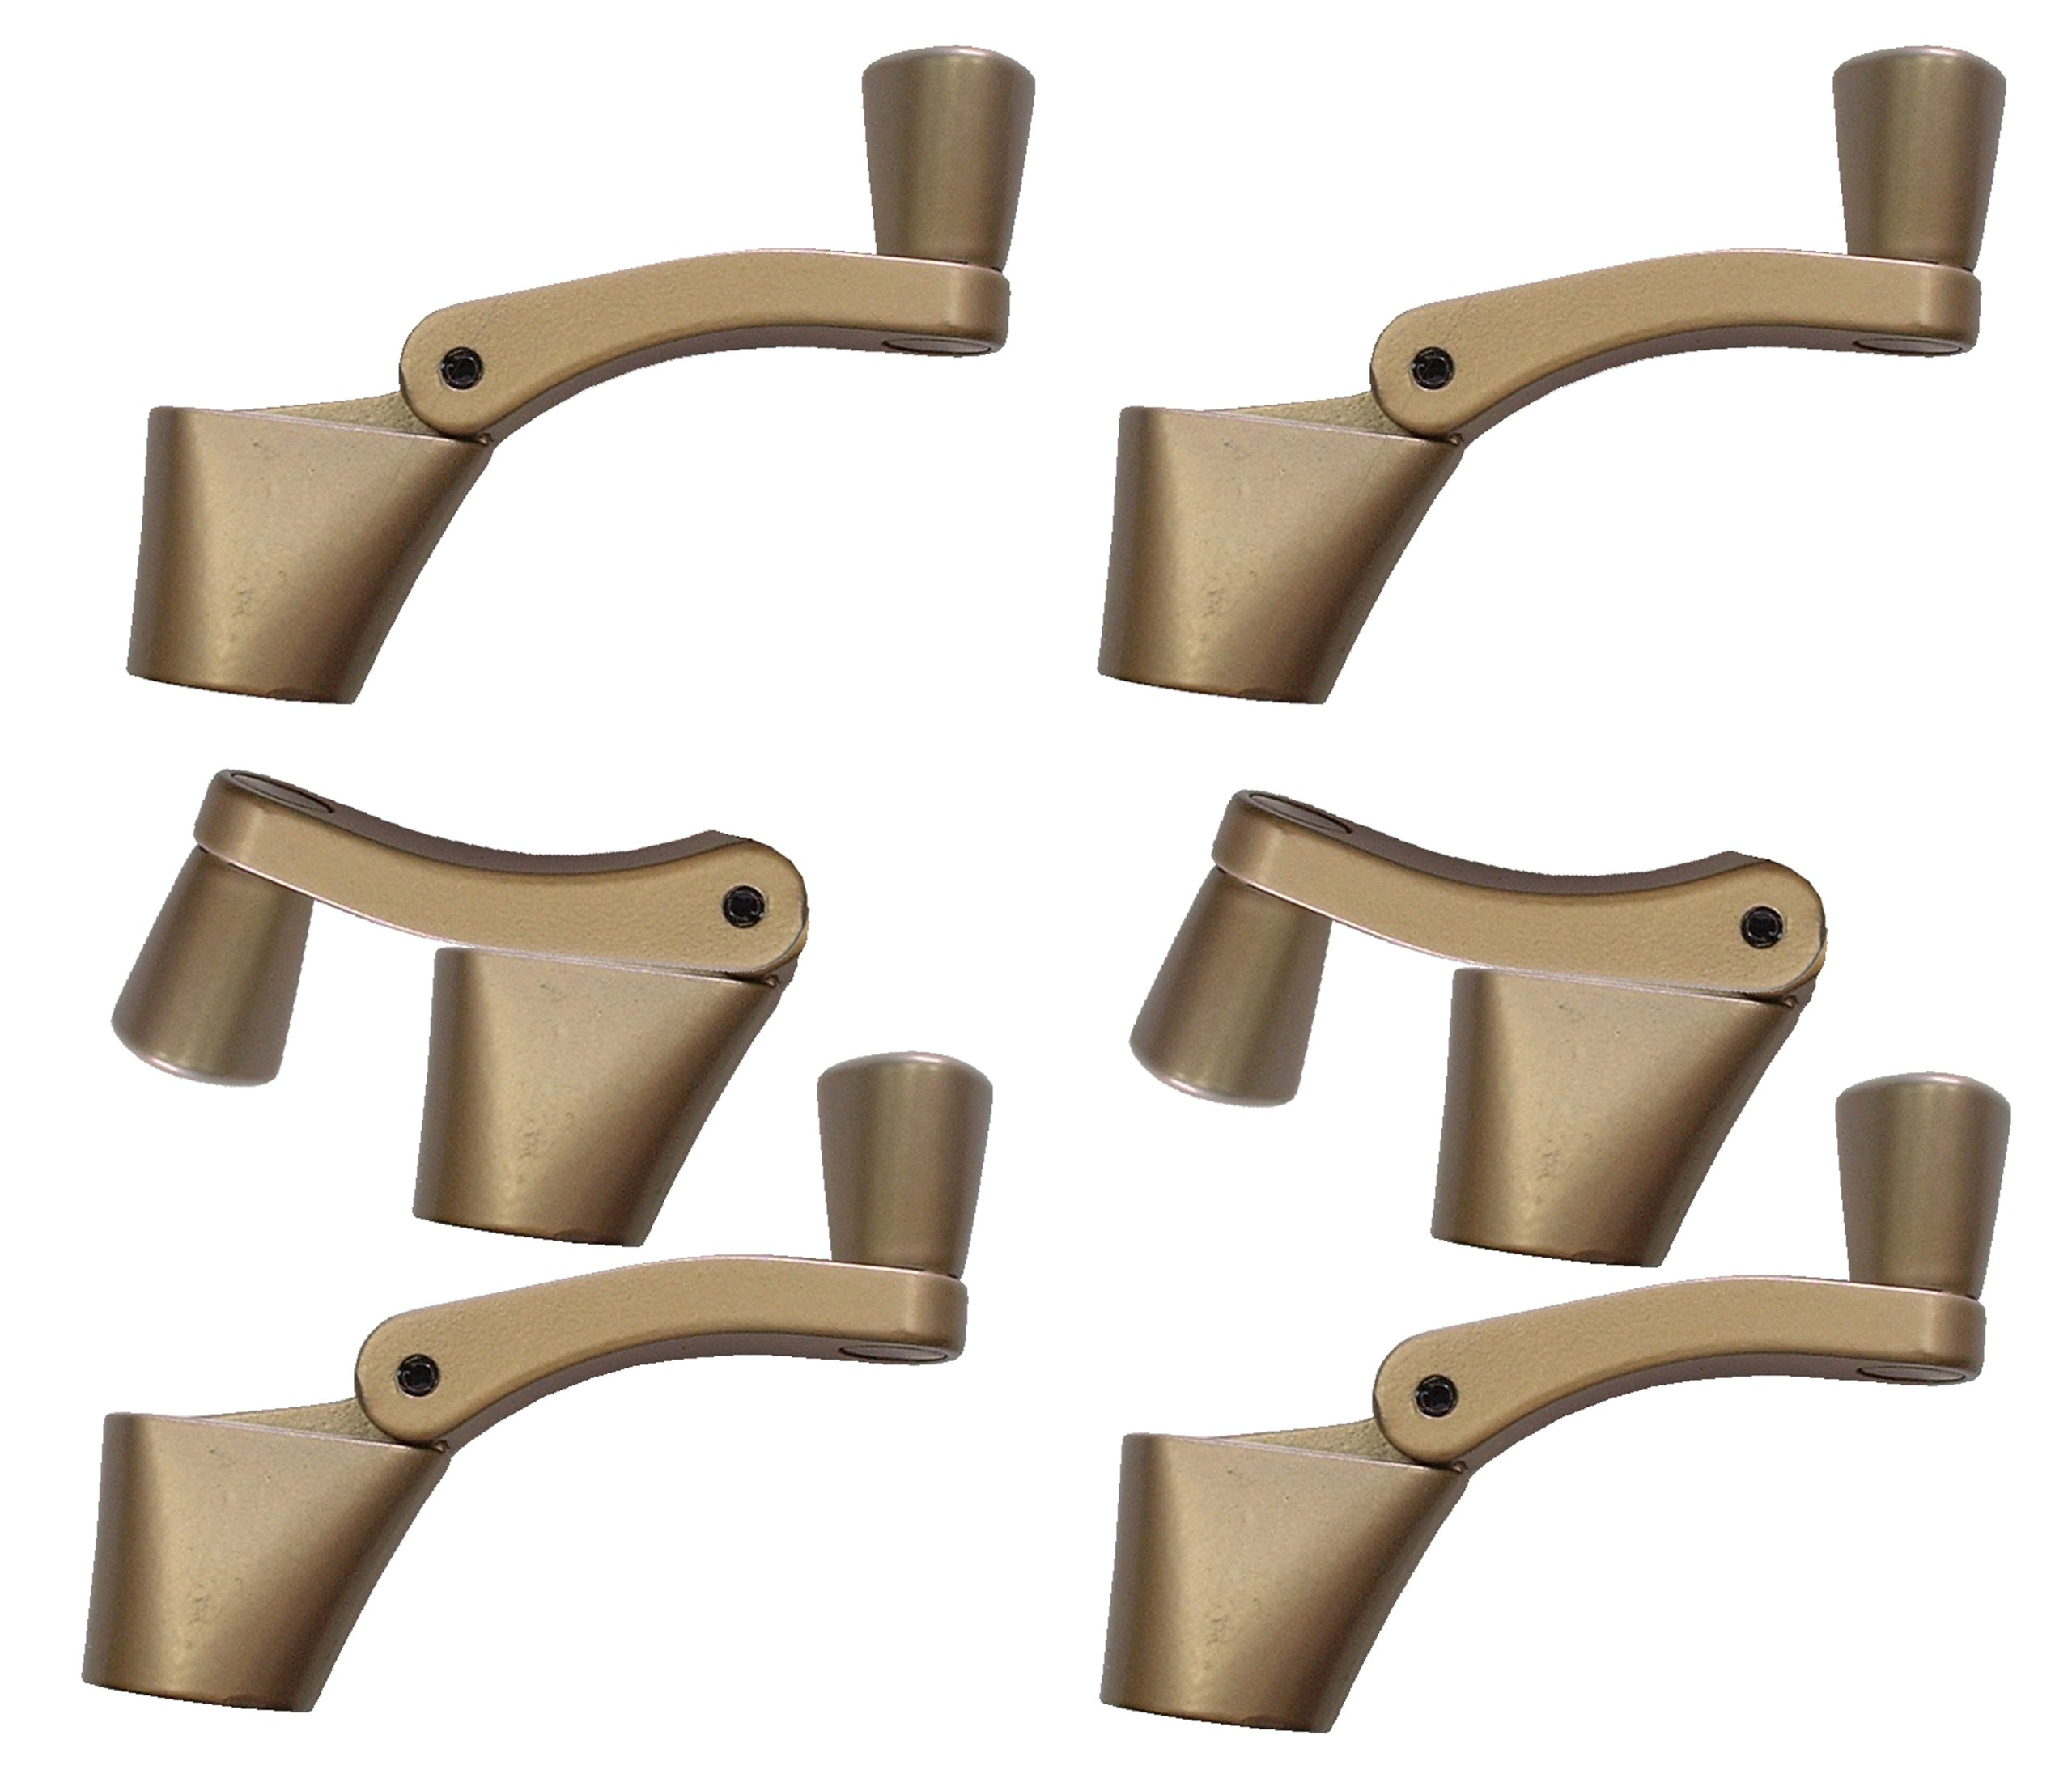 Ideal Security SK927B-6 Fold Away Handle Window Crank, Bronze, 6-Pack